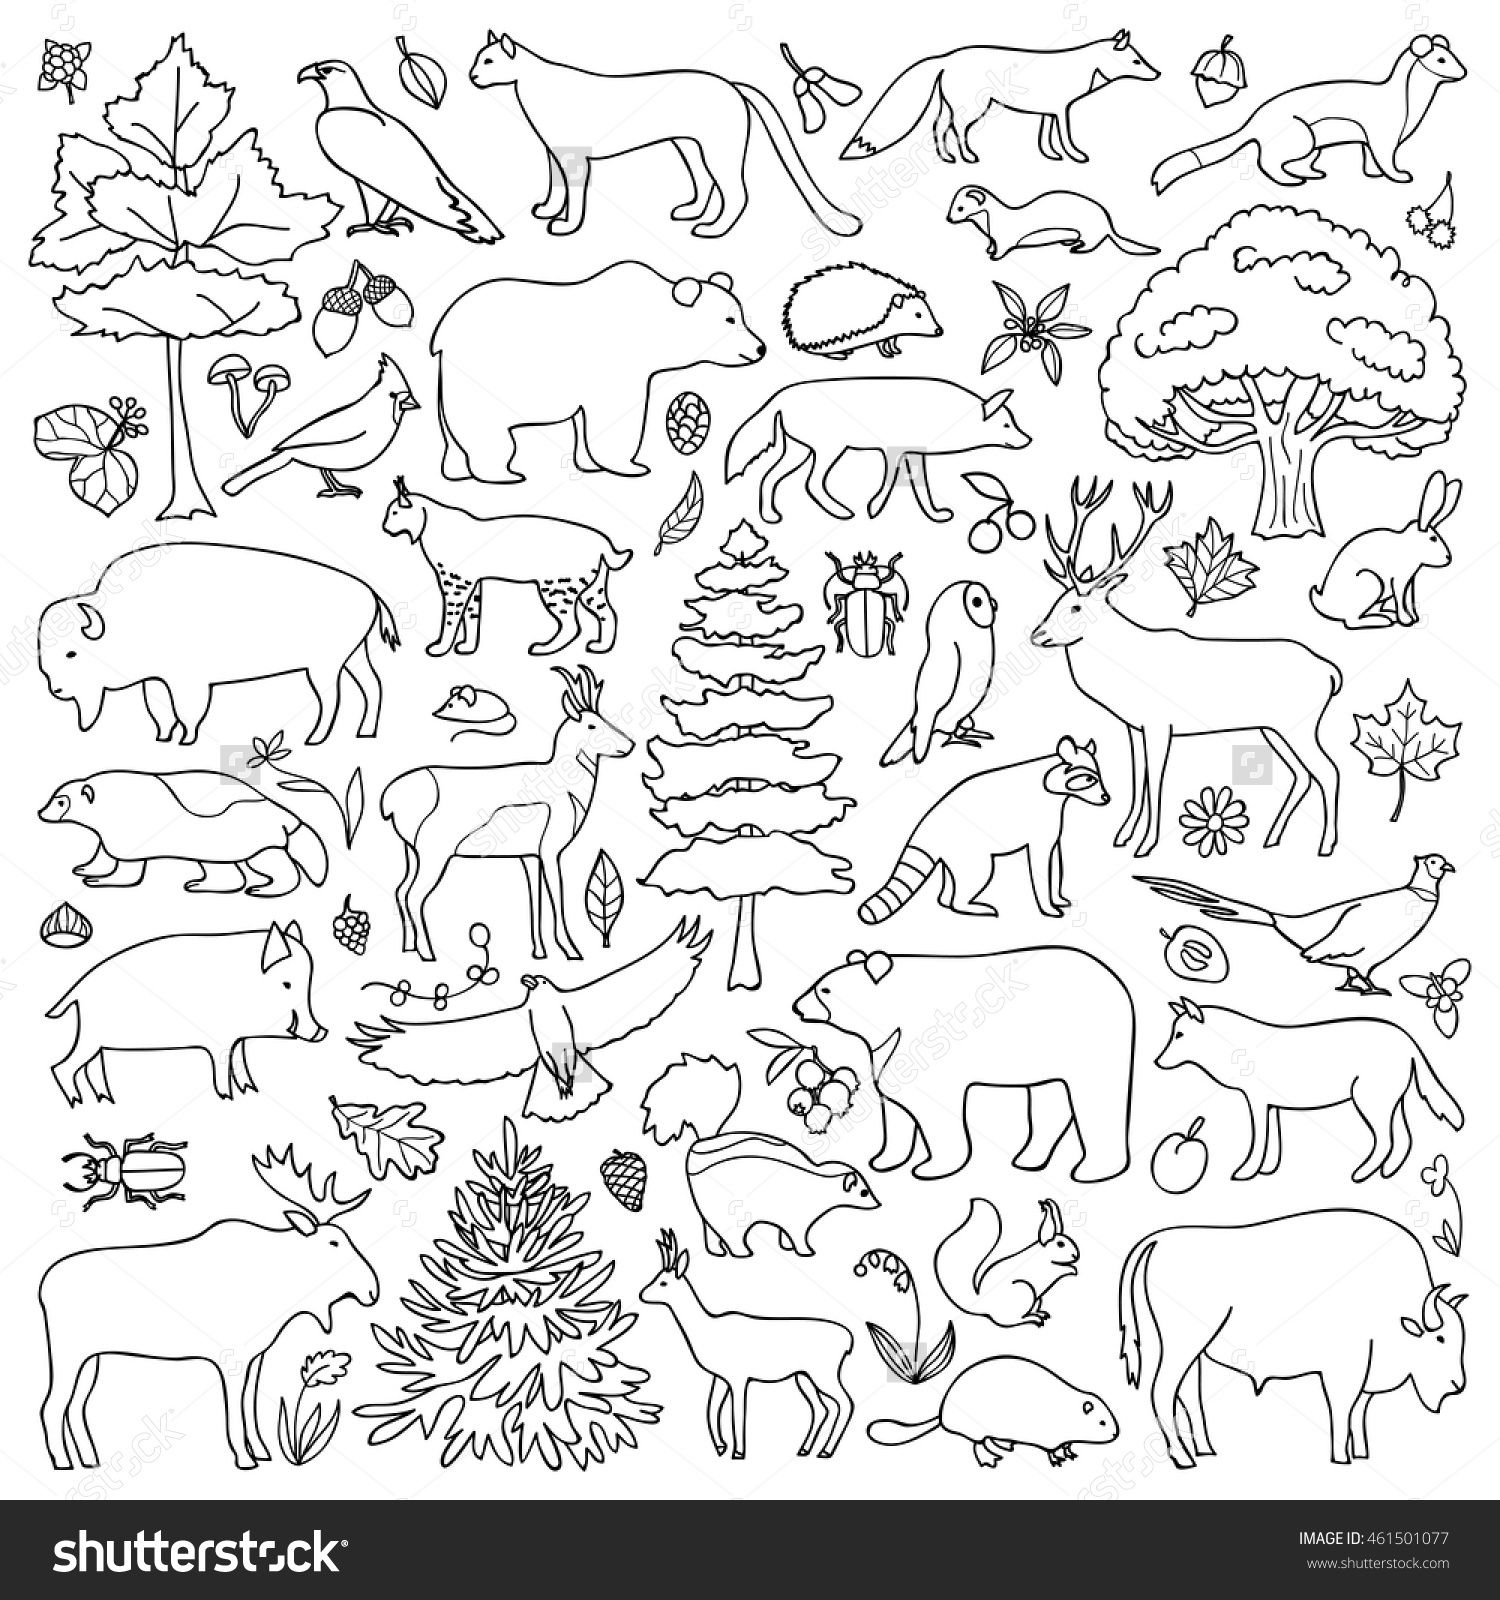 forest animal coloring pages forest coloring pages at getcoloringscom free printable animal coloring pages forest